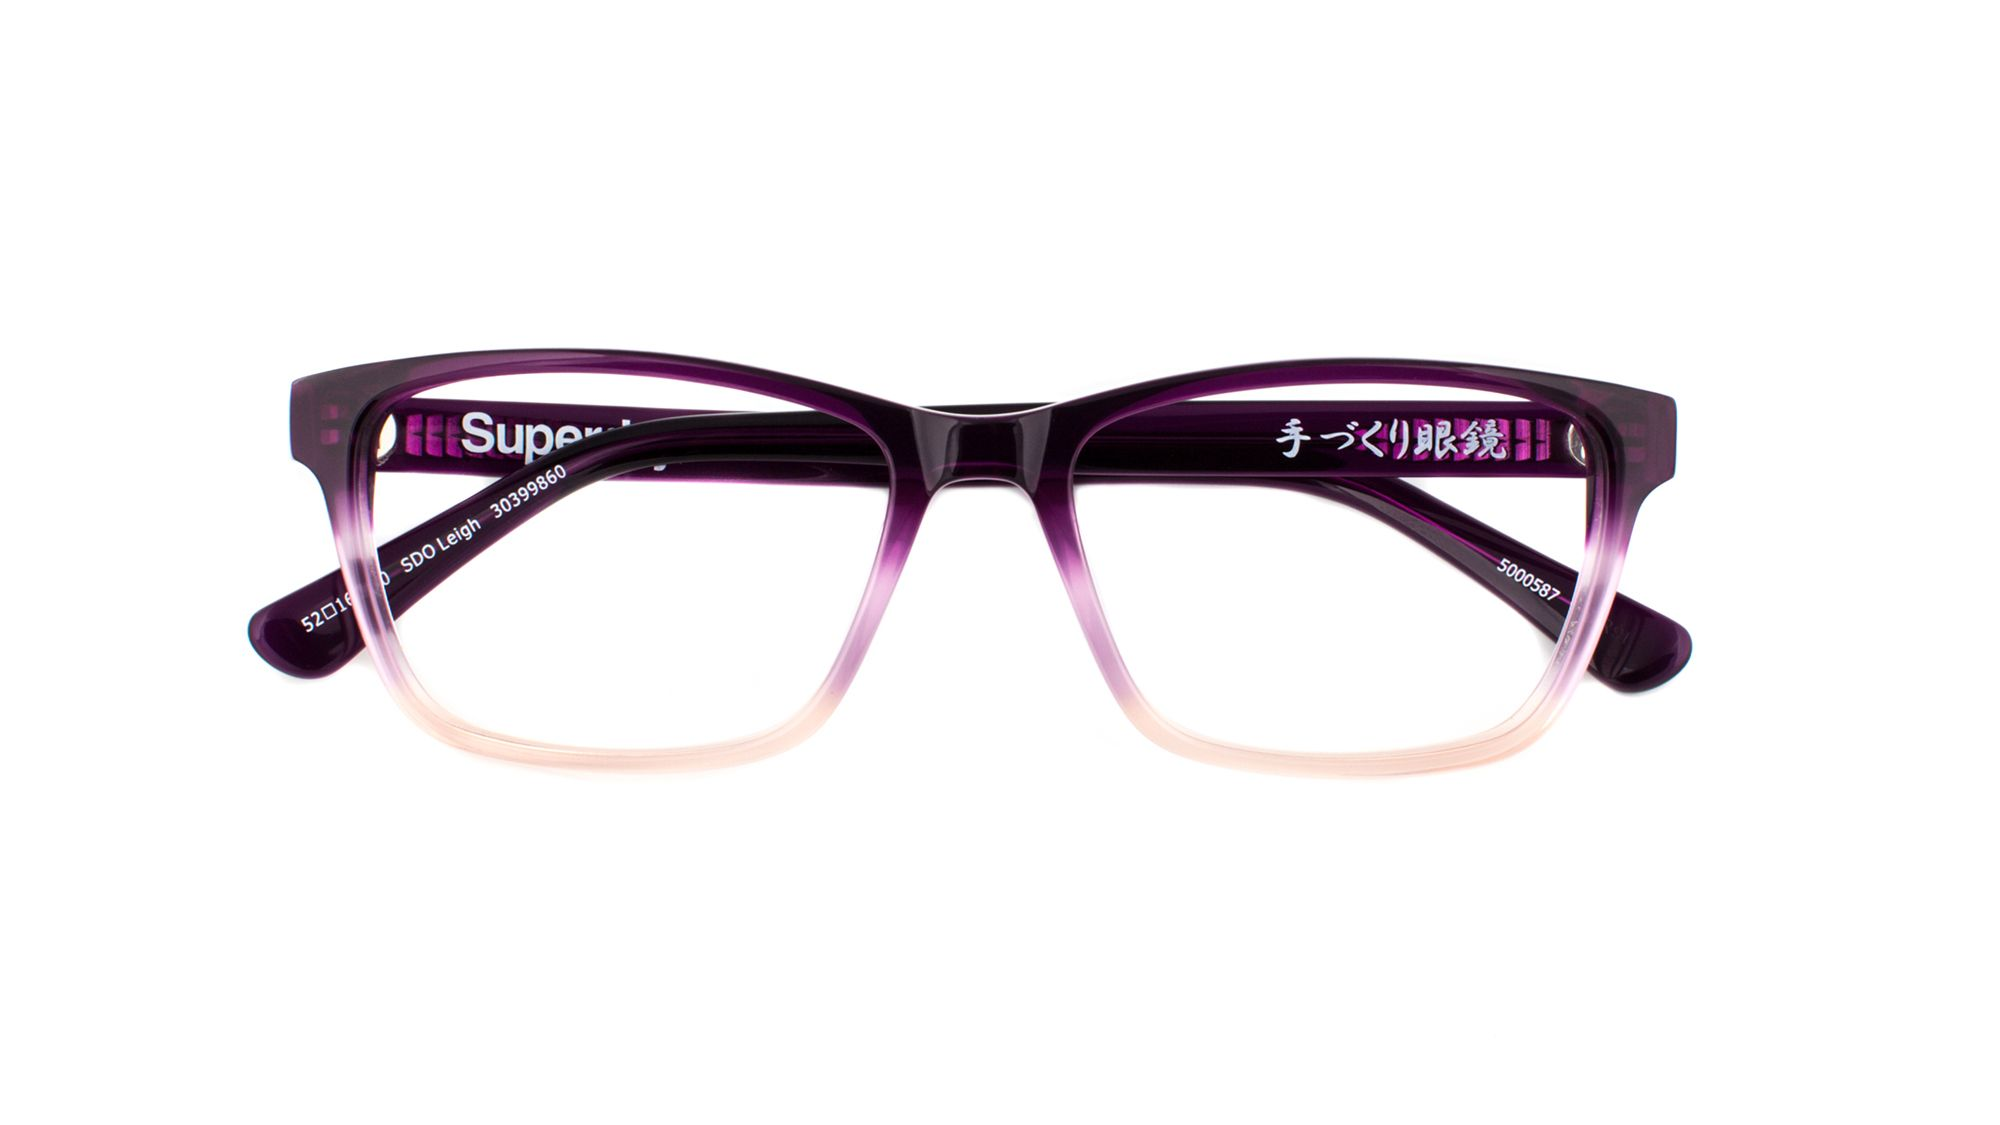 Superdry glasses SDO LEIGH (With images) Womens